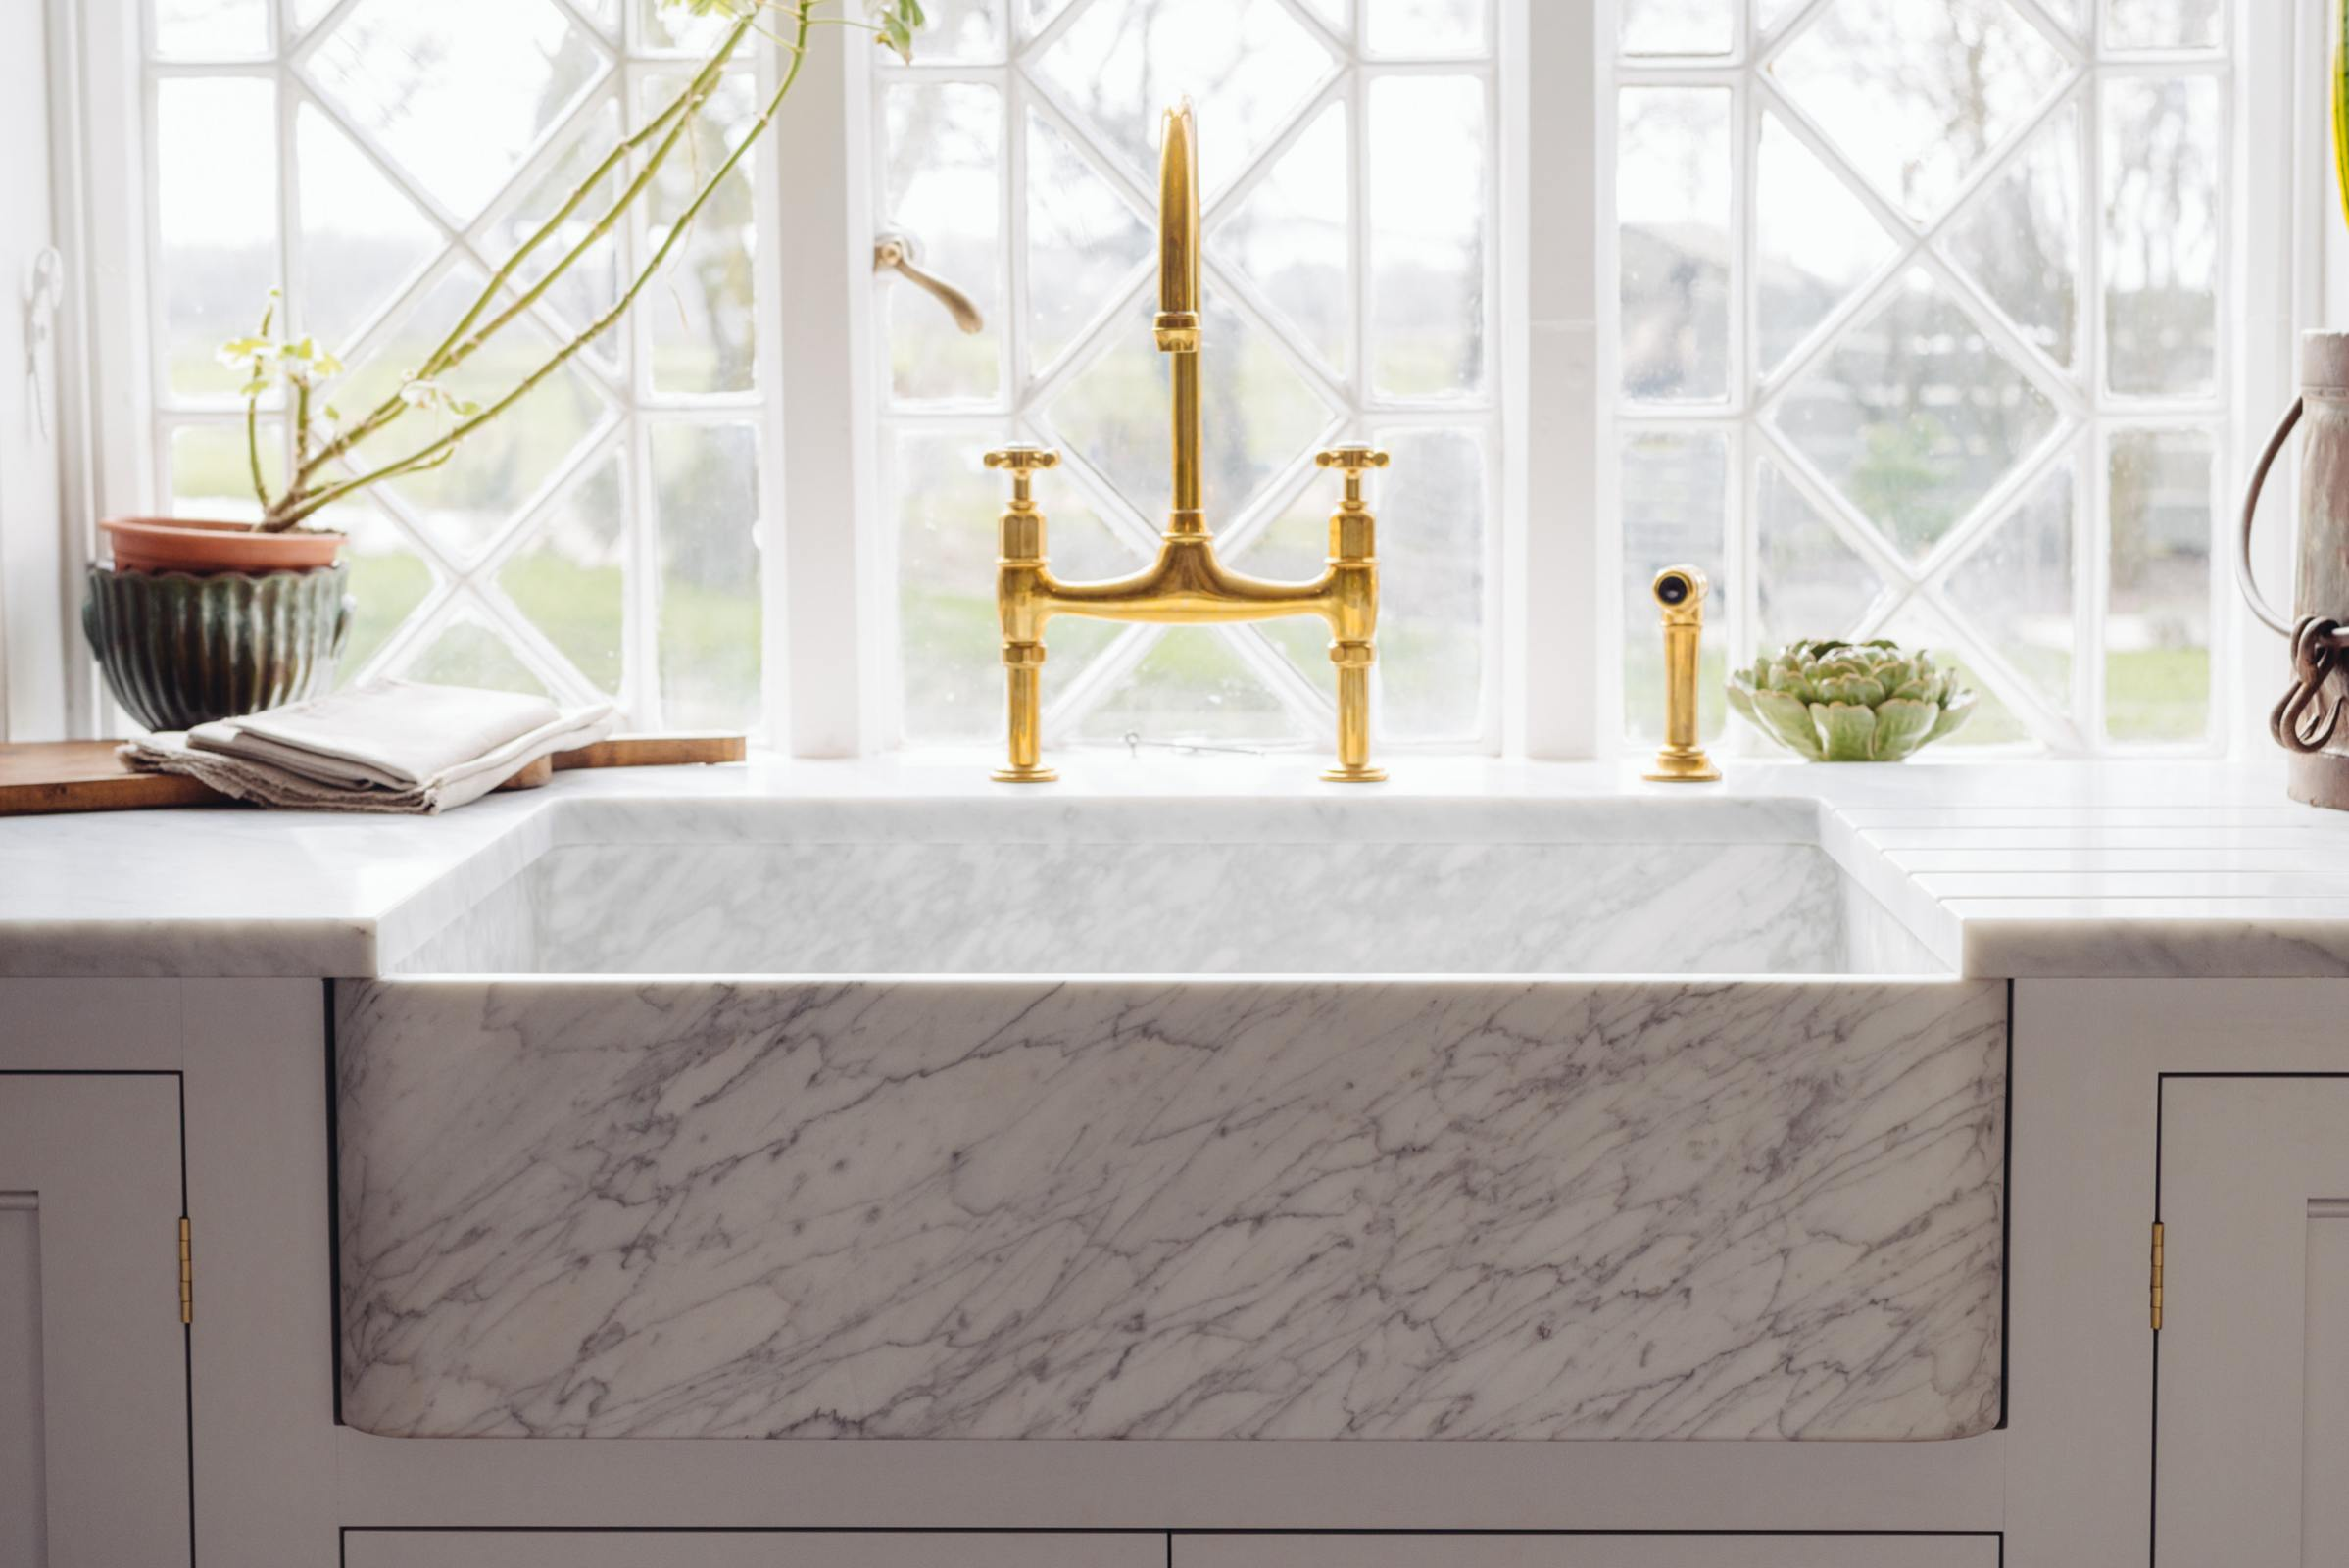 Milano Penthouse 31 1/2'' Single Marble Sink photo 7